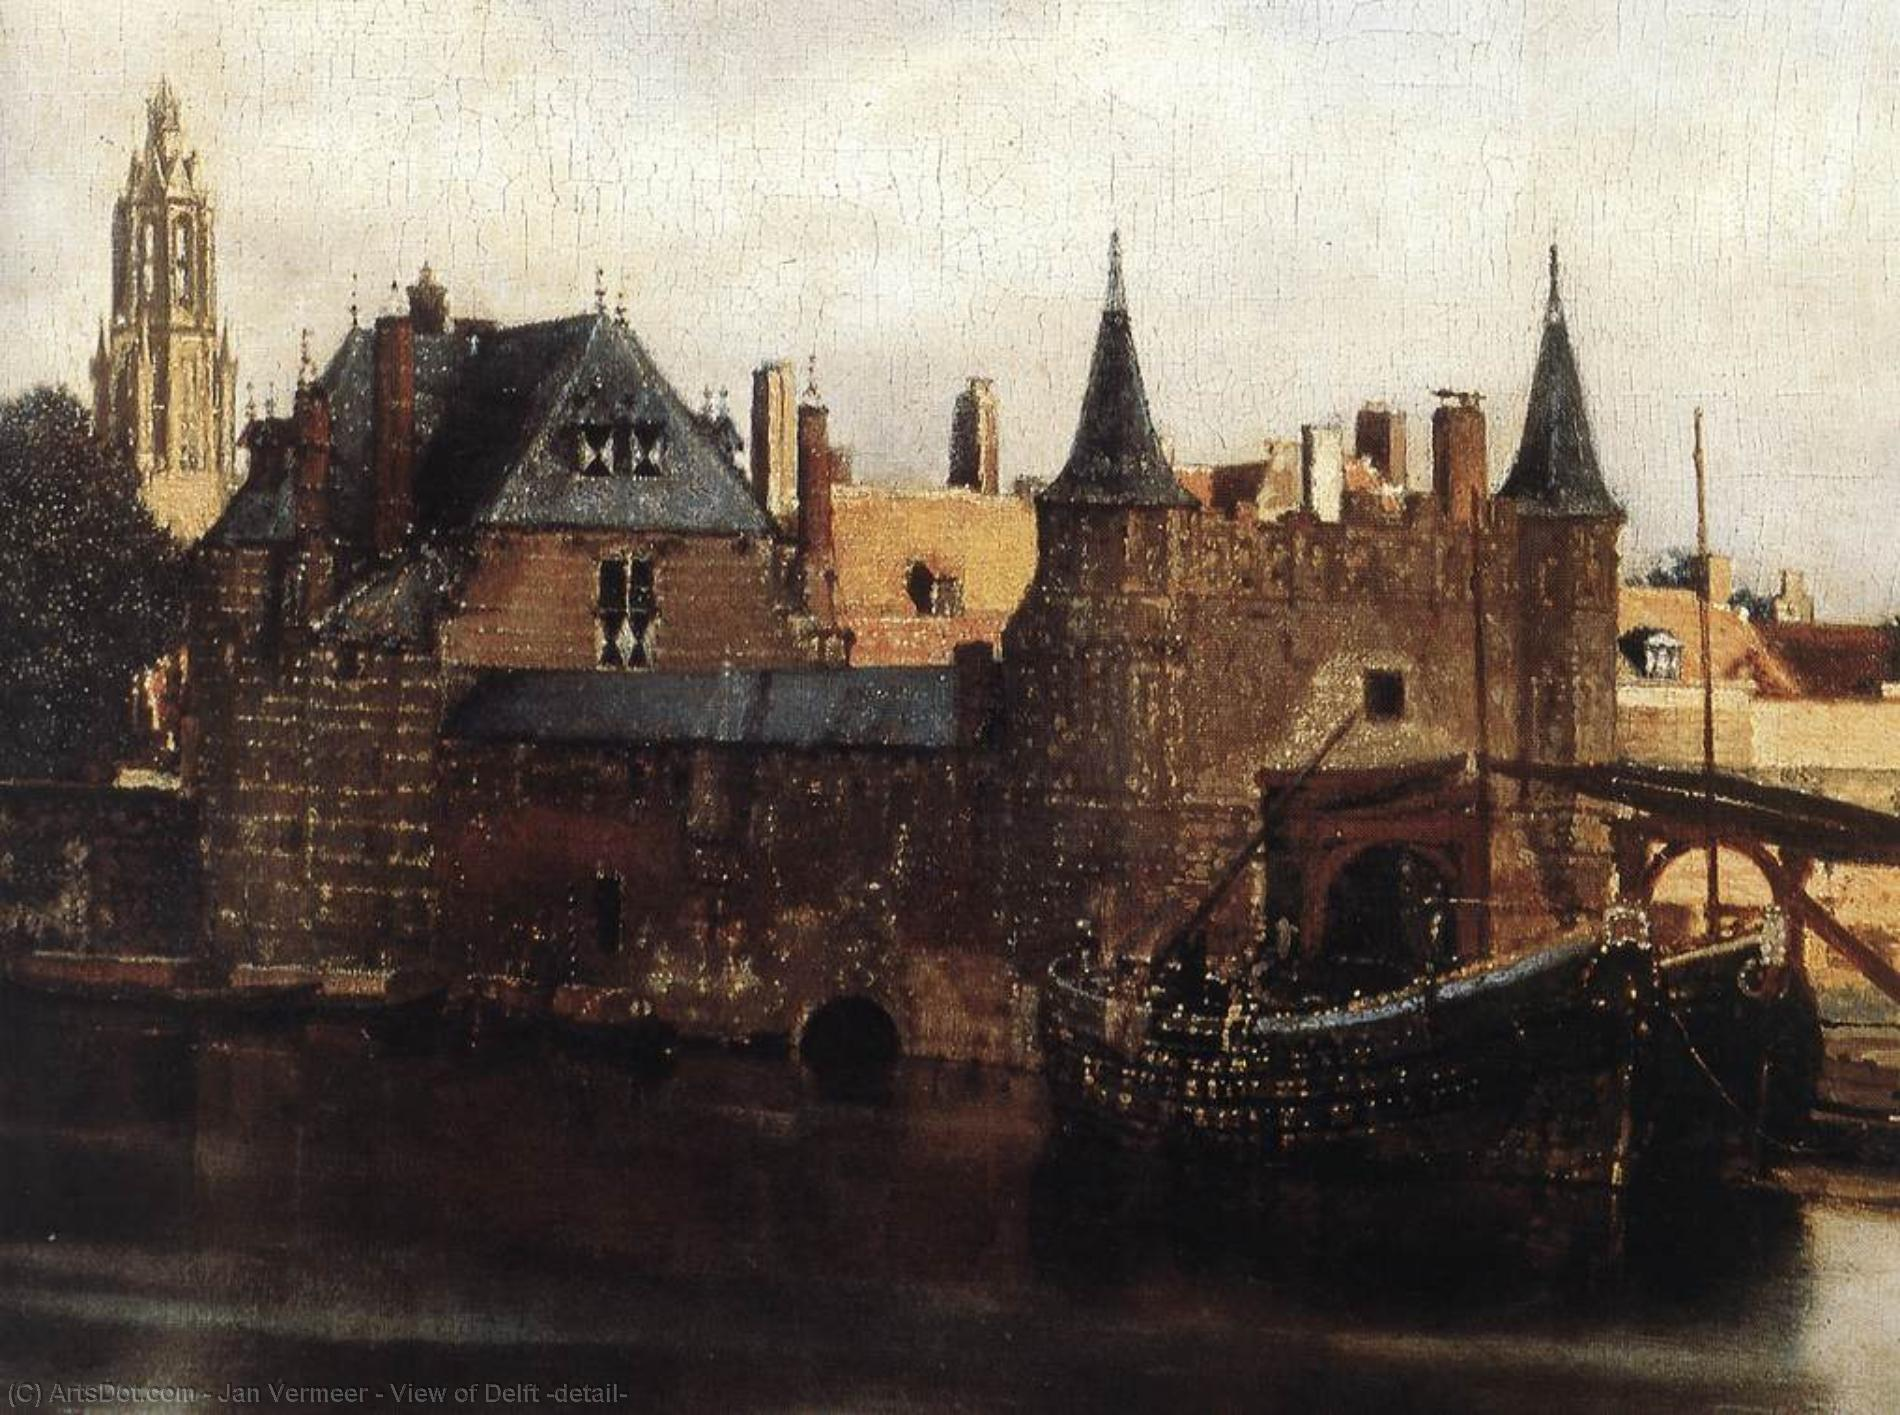 Wikioo.org - The Encyclopedia of Fine Arts - Painting, Artwork by Jan Vermeer - View of Delft (detail)